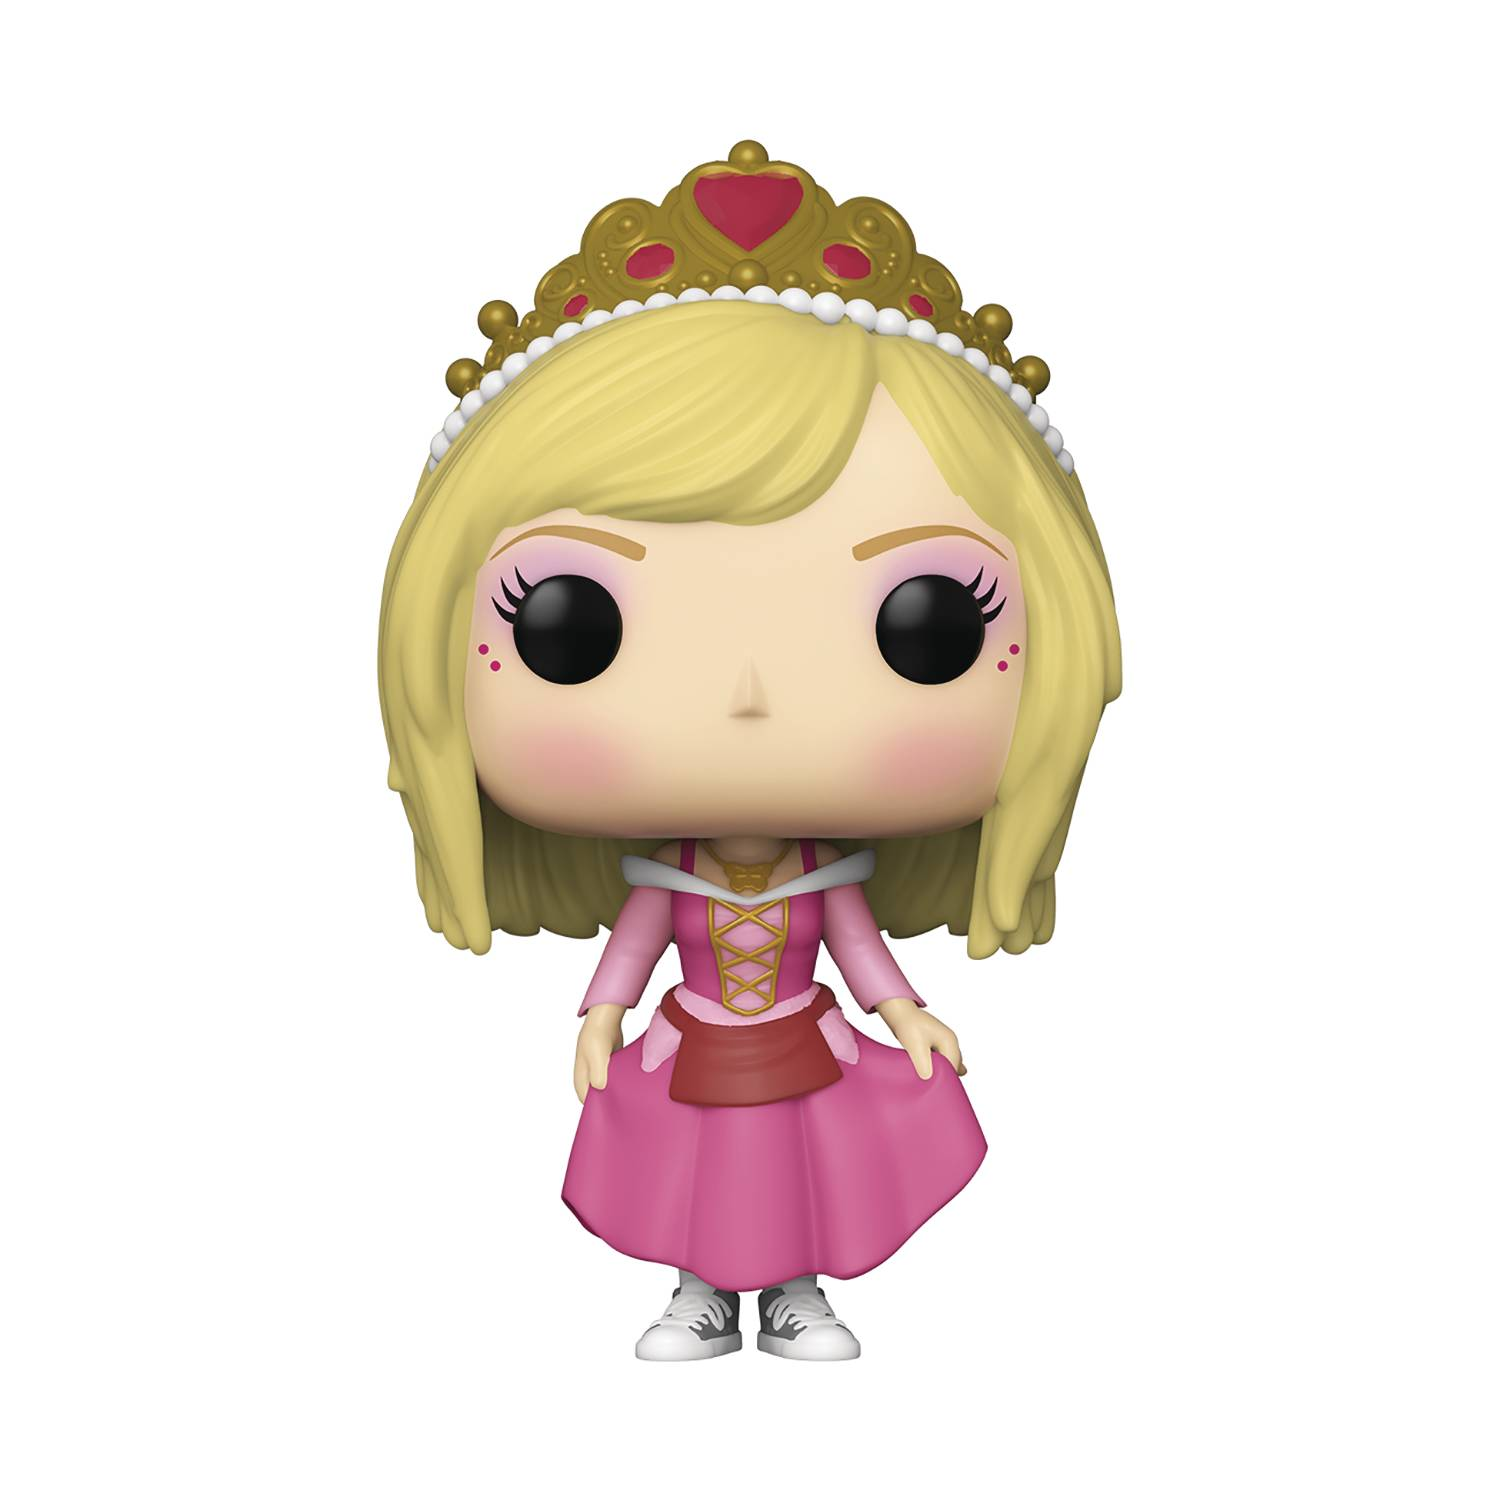 POP TV ALWAYS SUNNY IN PHILADELPHIA PRINCESS DEE FIG